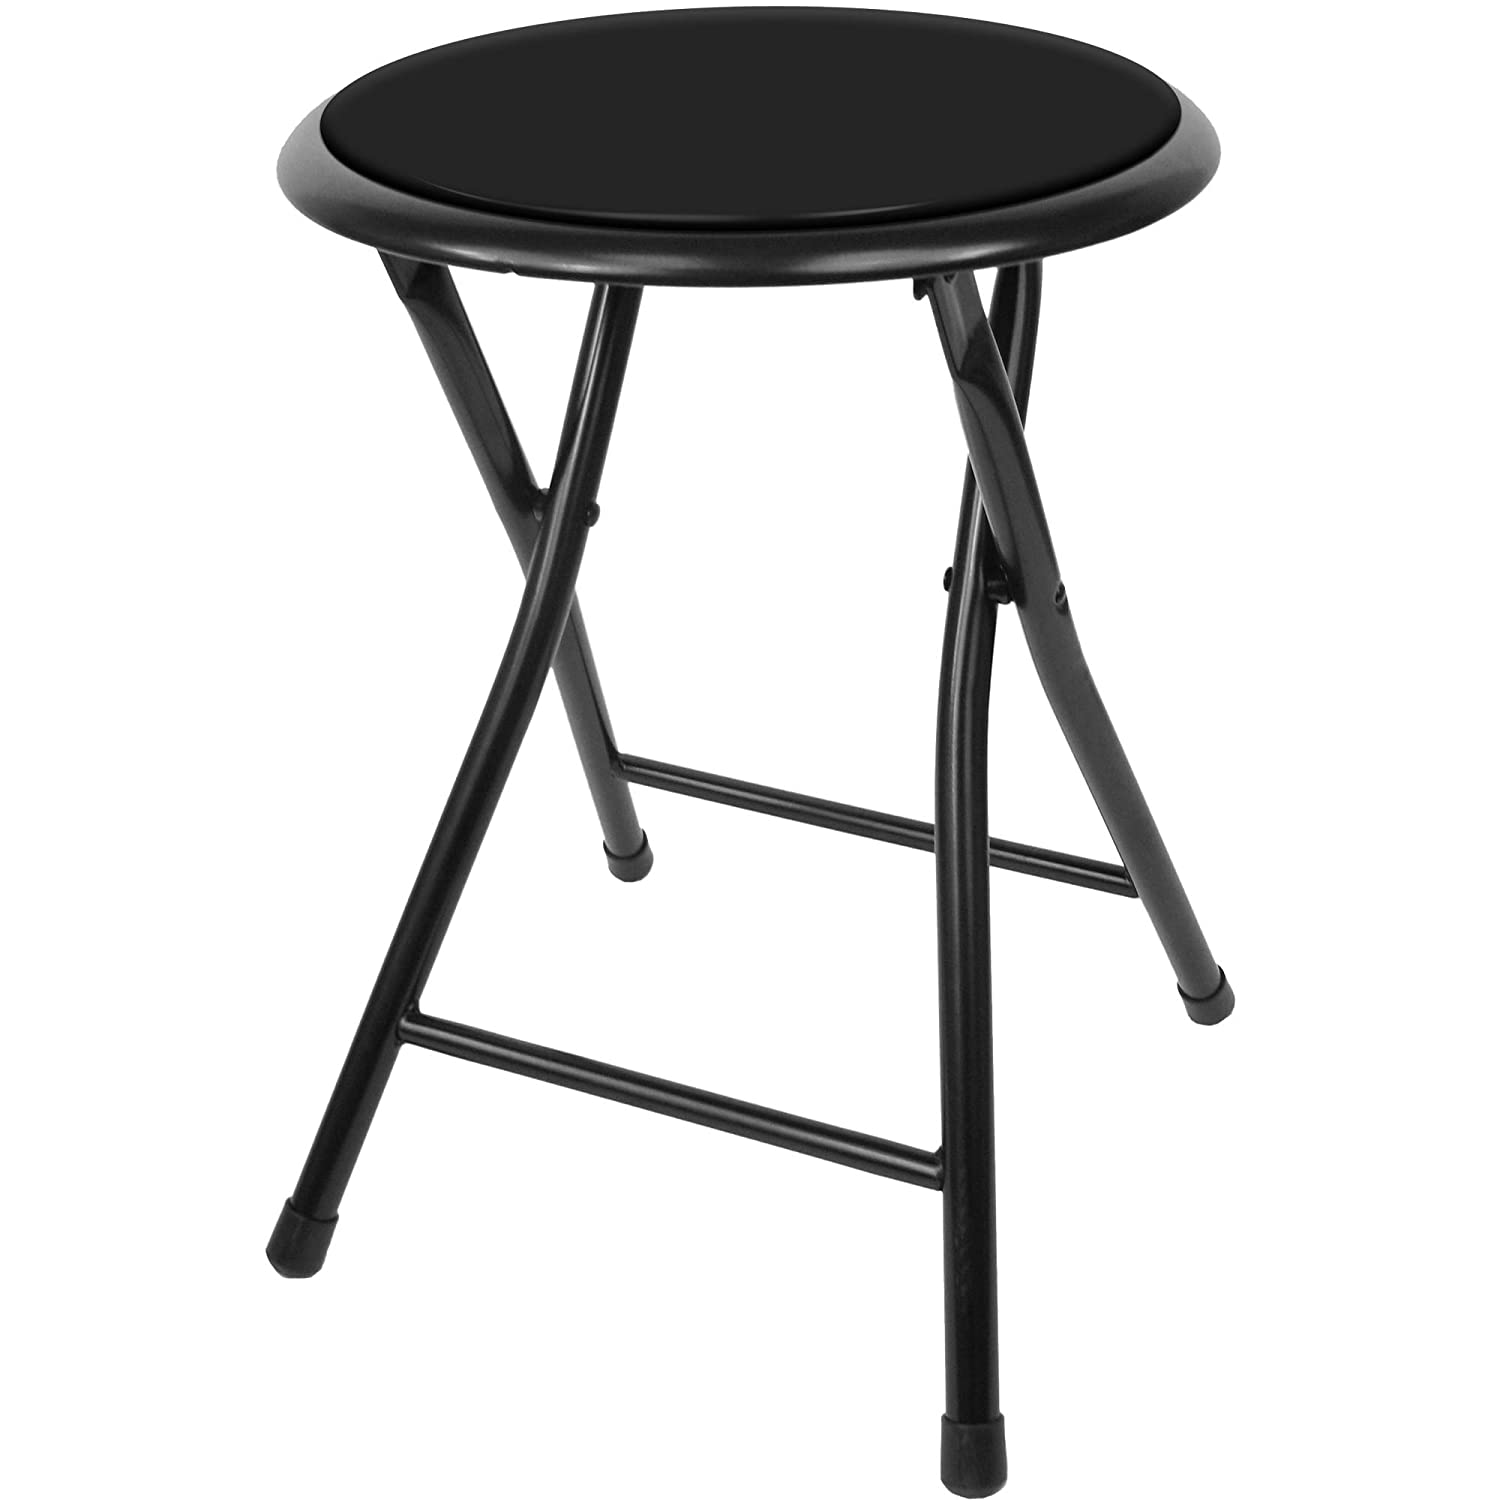 Trademark Home Collection Folding Heavy Duty 18-Inch Collapsible Padded Round Stool with 300 Pound Capacity for Dorm, Rec Room or Gameroom (Midnight)